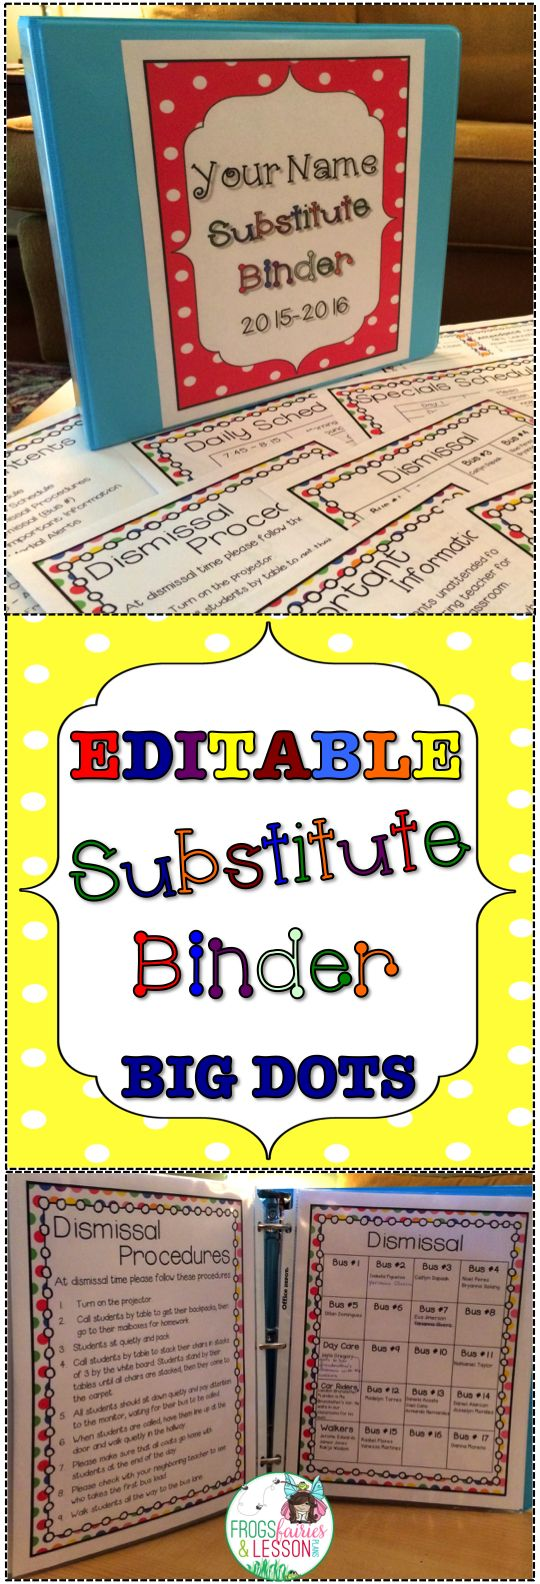 EDITABLE substitute binder Cover choices and templates